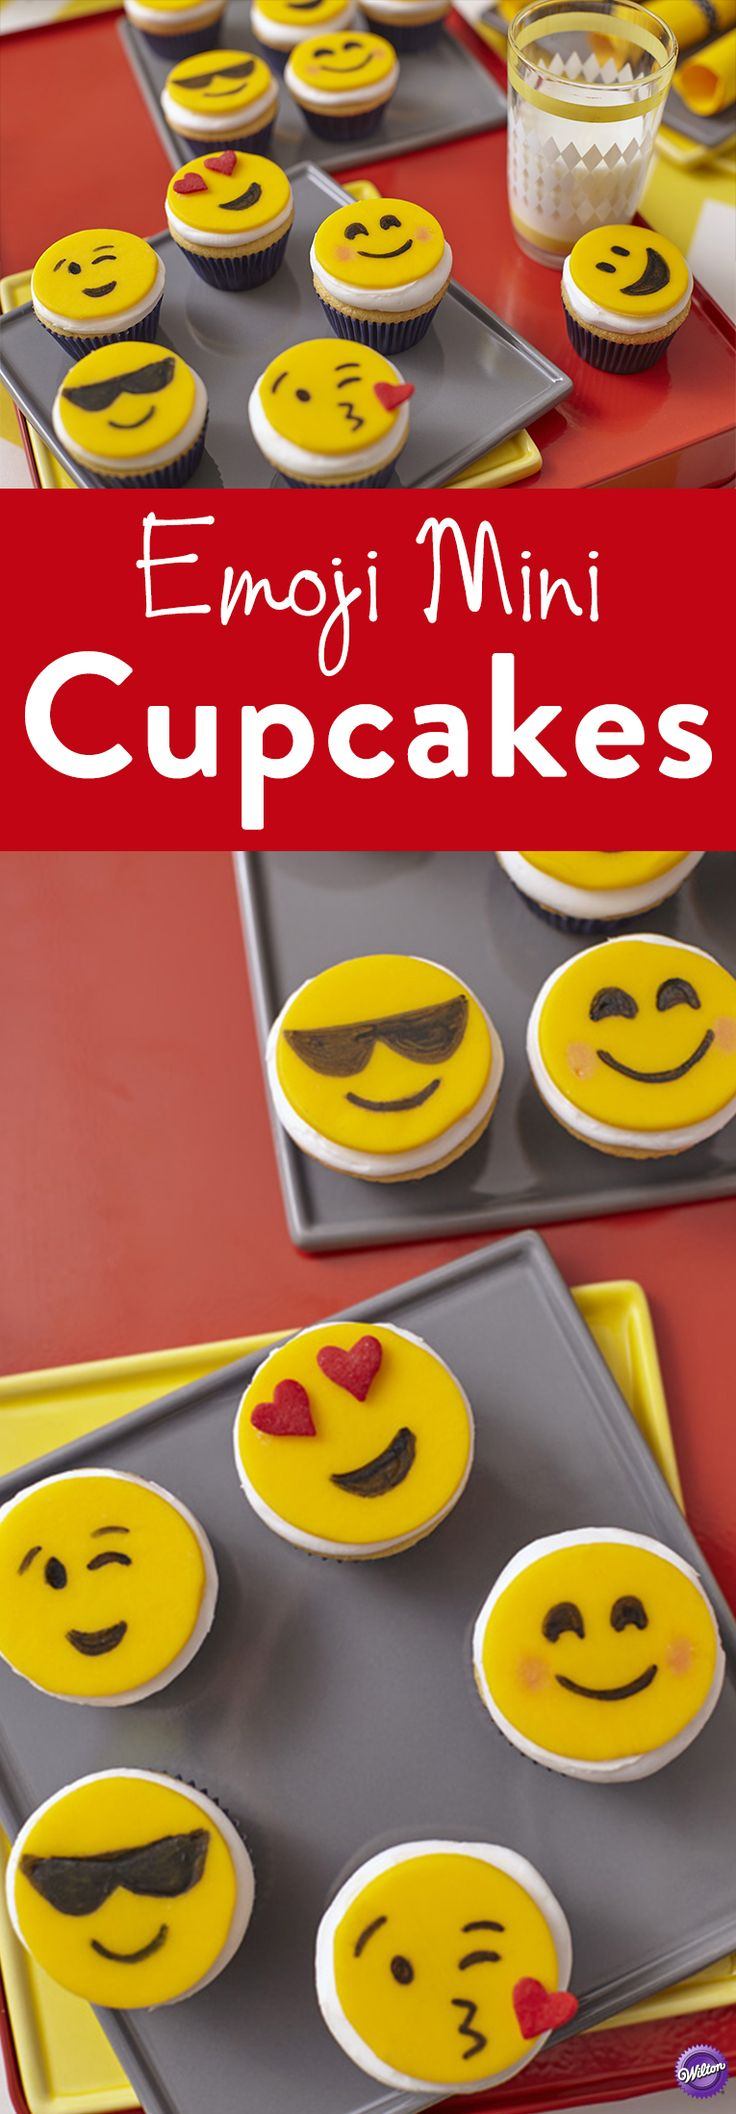 How to Make Emoji Mini Cupcakes - Express yourself with fondant emojis that add as much personality to your cupcakes as they do to e-mails! Decorate with FoodWriter edible color markers, Pearl Dust and Jumbo Hearts Sprinkles.